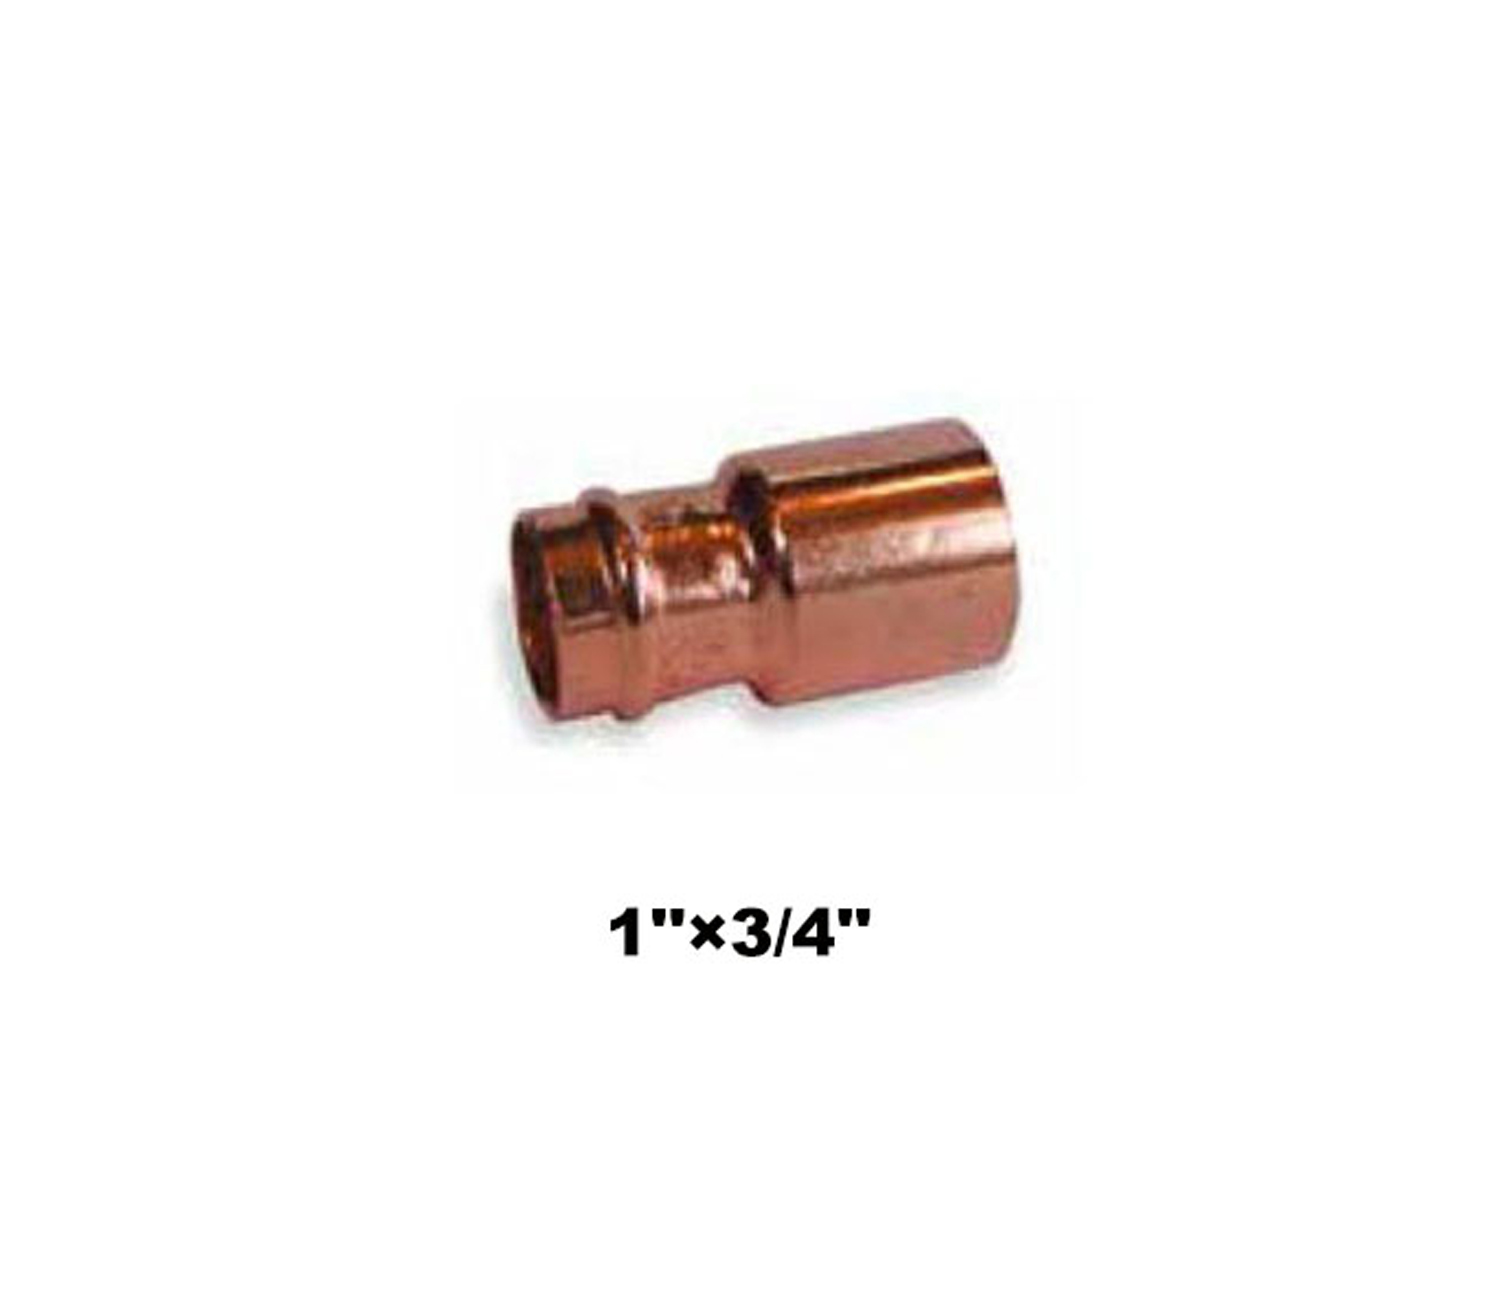 C48_Suntask_Compression_Fitting_Reducer _1''×3_4''_Dublin_12.jpg